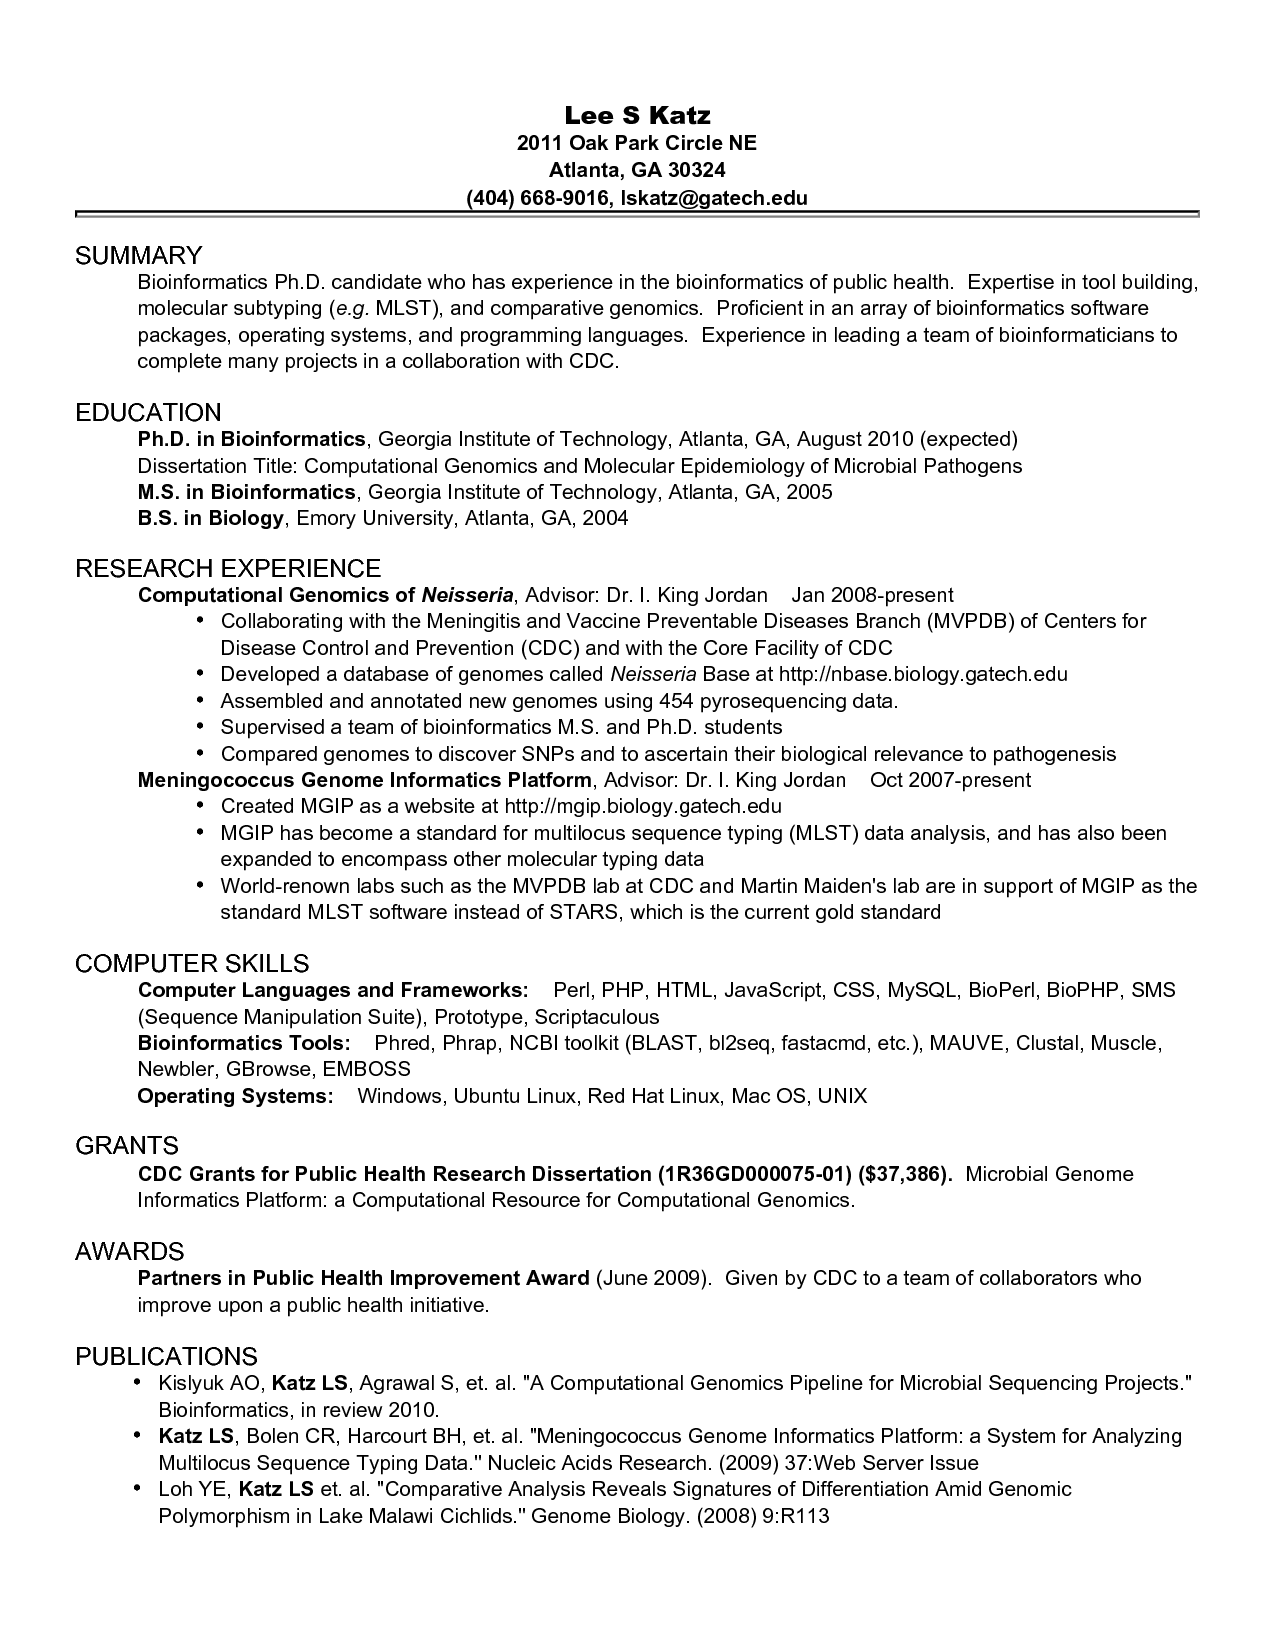 PhD Academic CV resume Cv template, Academic cv, Student